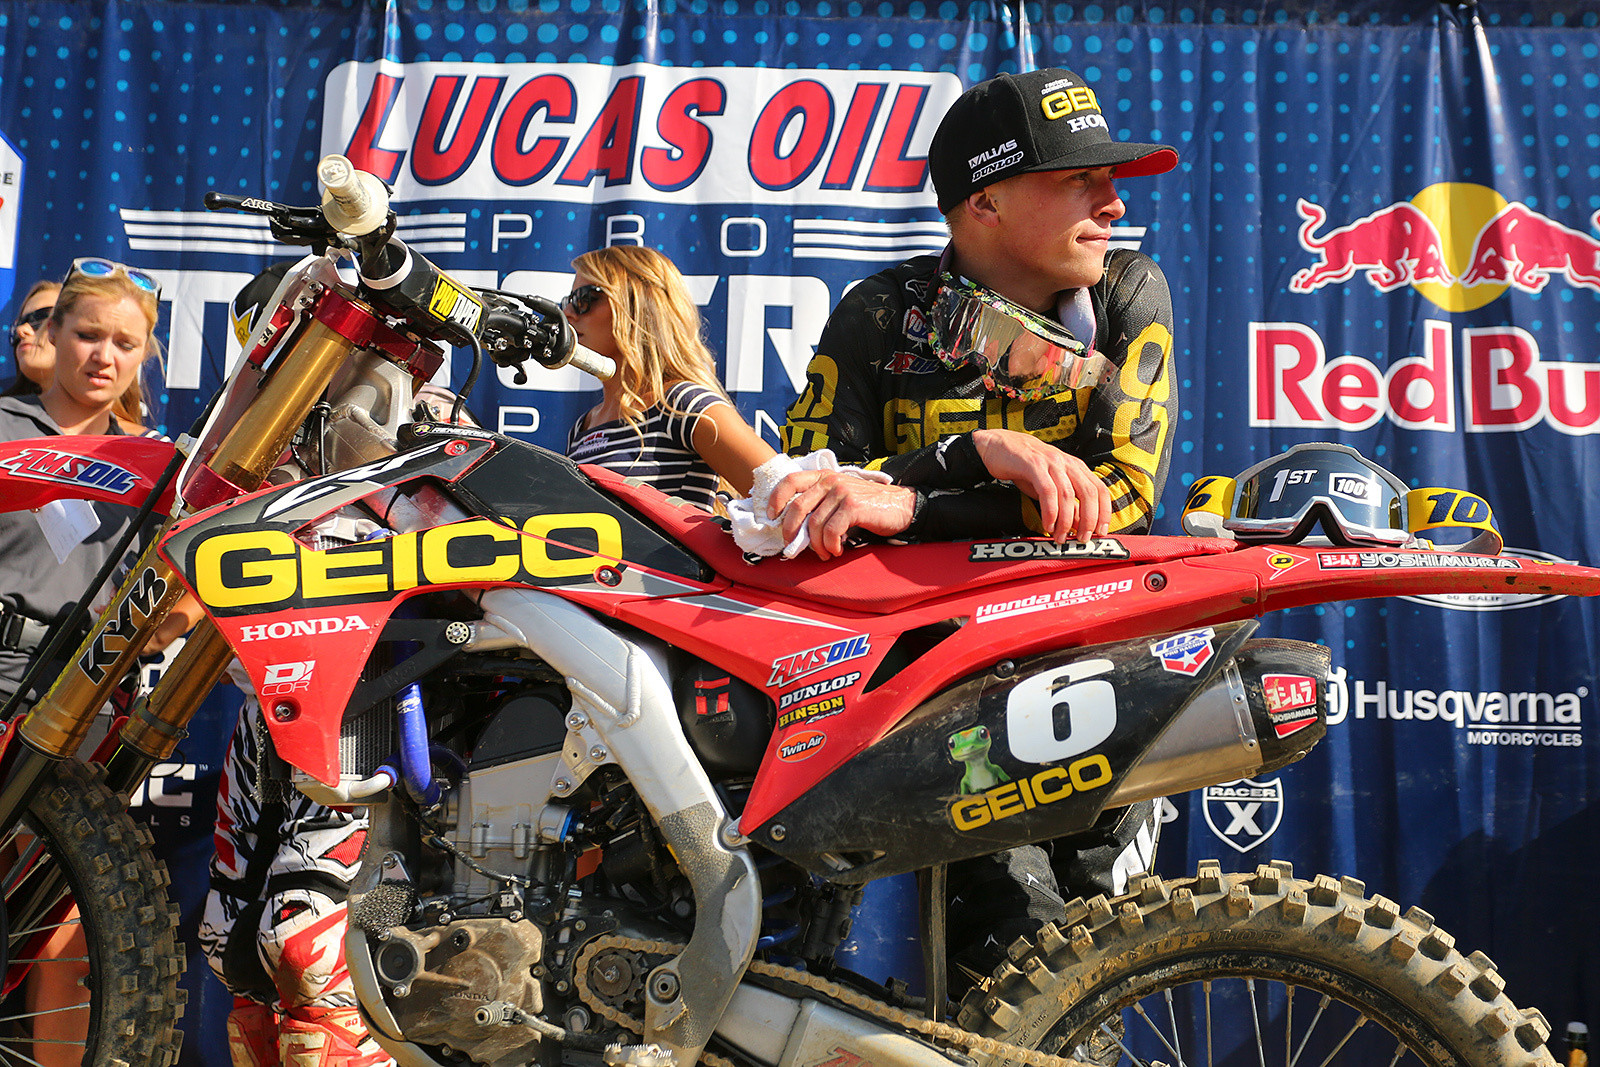 Jeremy Martin was looking pretty pleased with his first win with GEICO Honda.